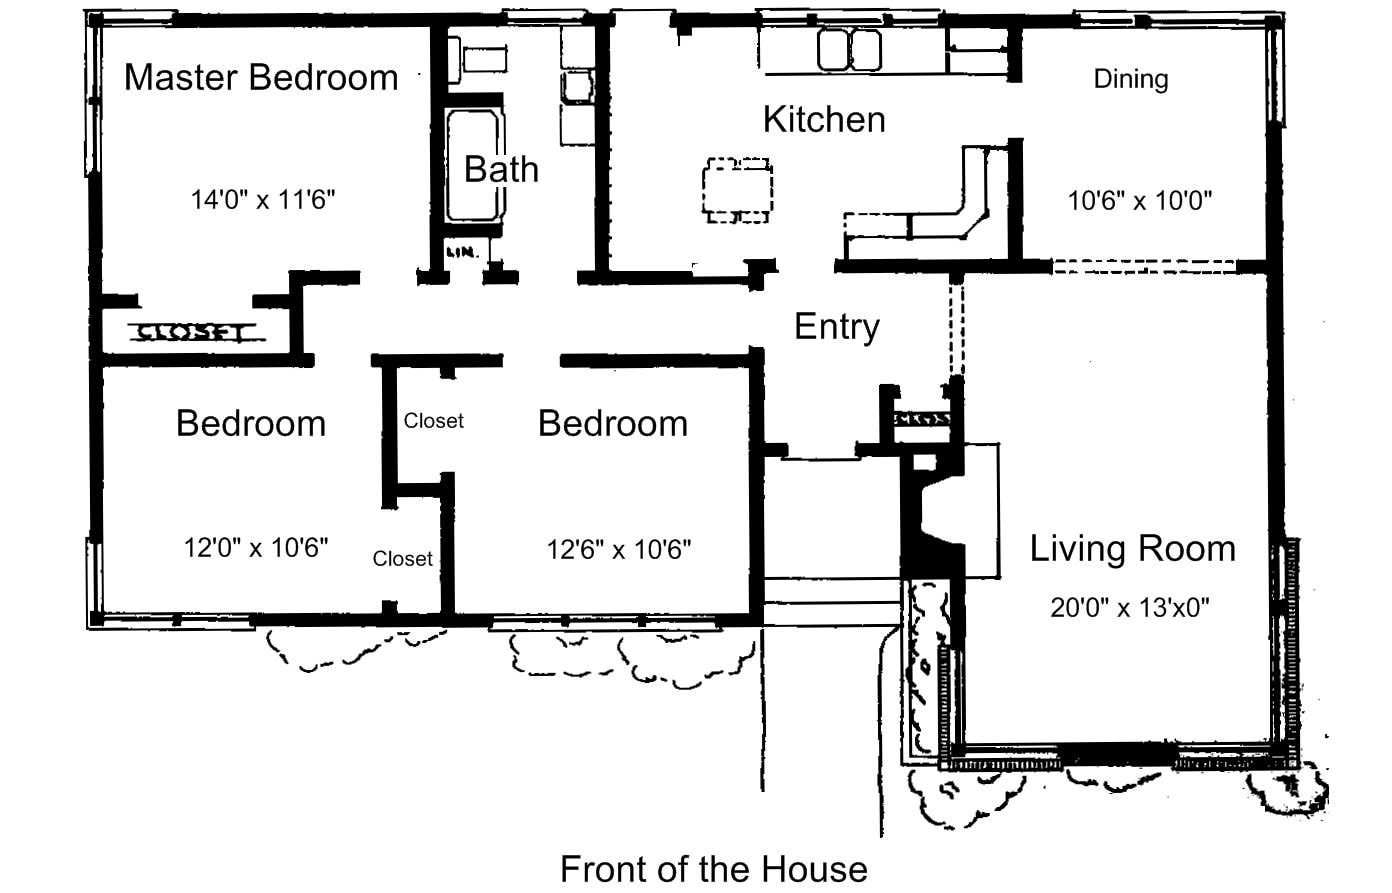 Free floor plans for small houses small house plans smallest house and tiny houses Tiny house blueprints free